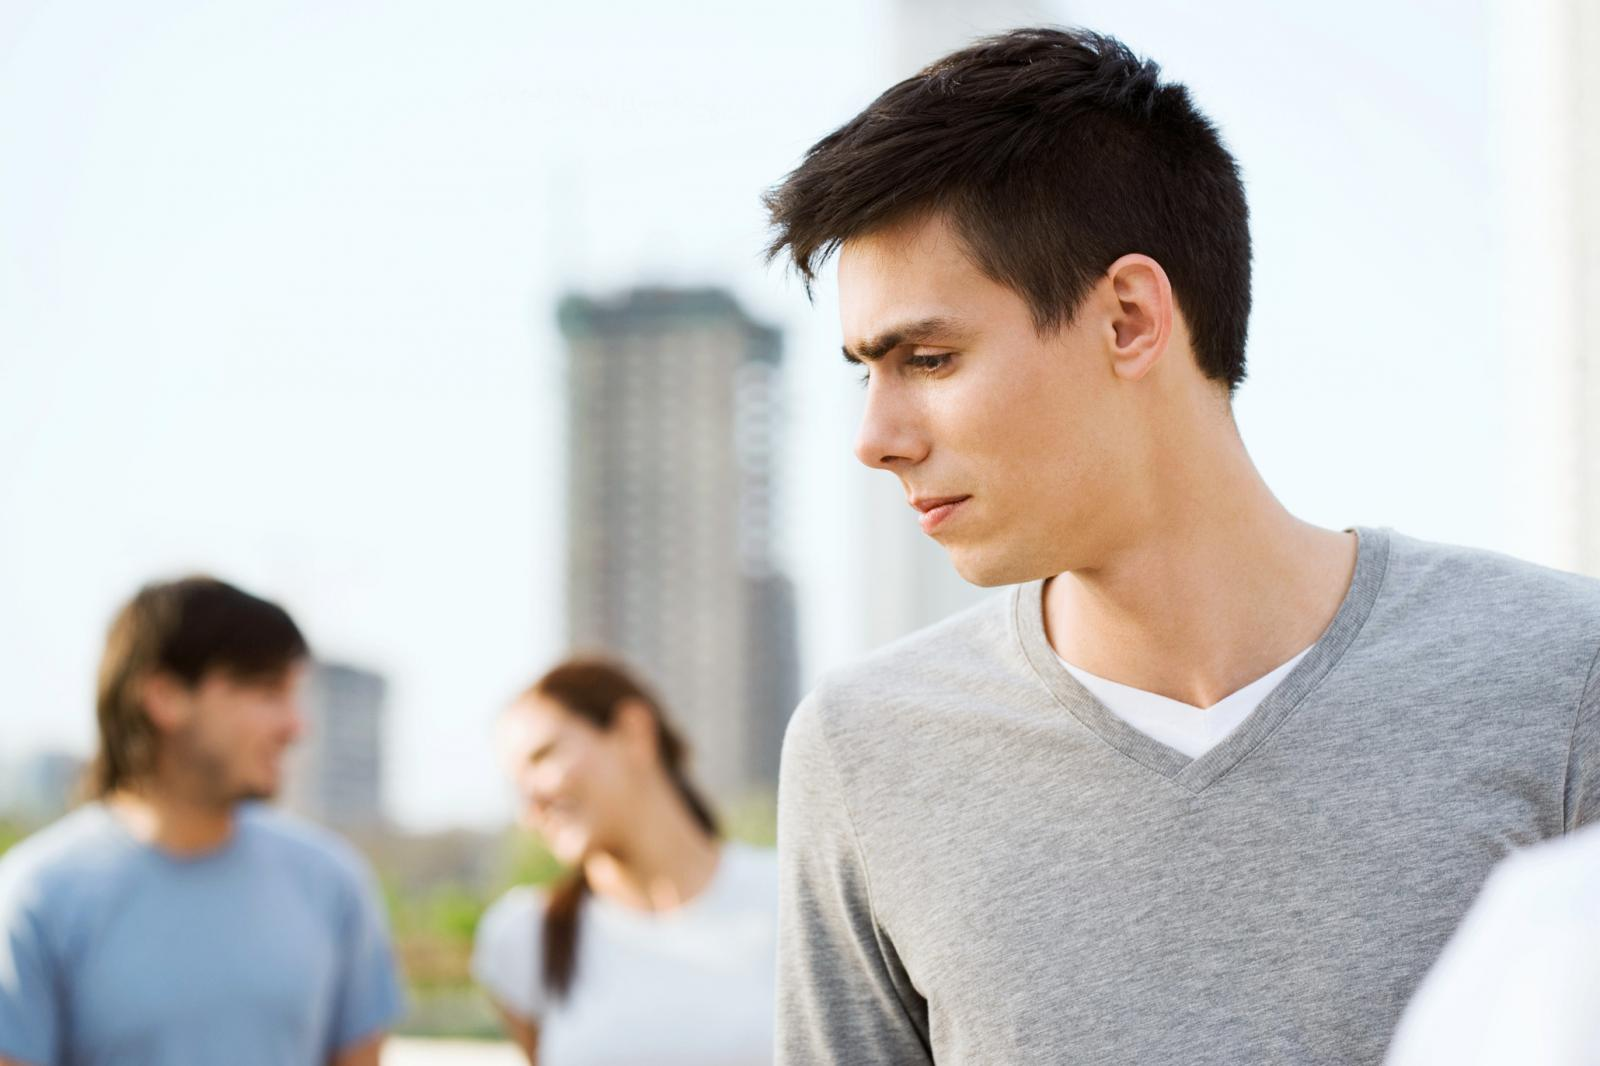 Young man looking to the side, young couple in background